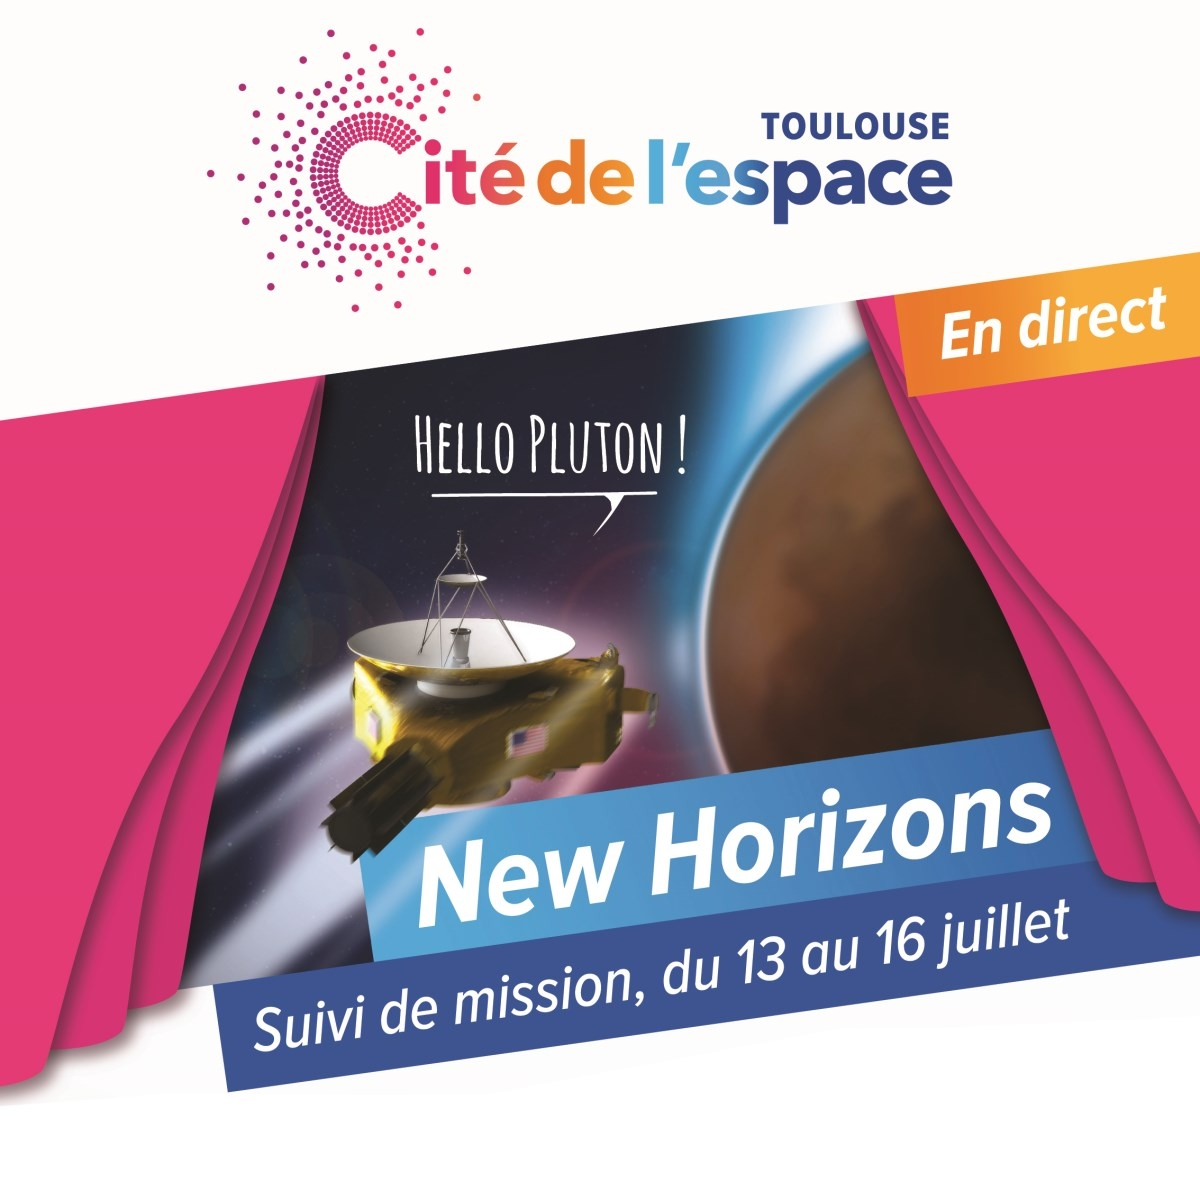 je_evenement_cite-de-lespace-pluton-new-horizon.jpg